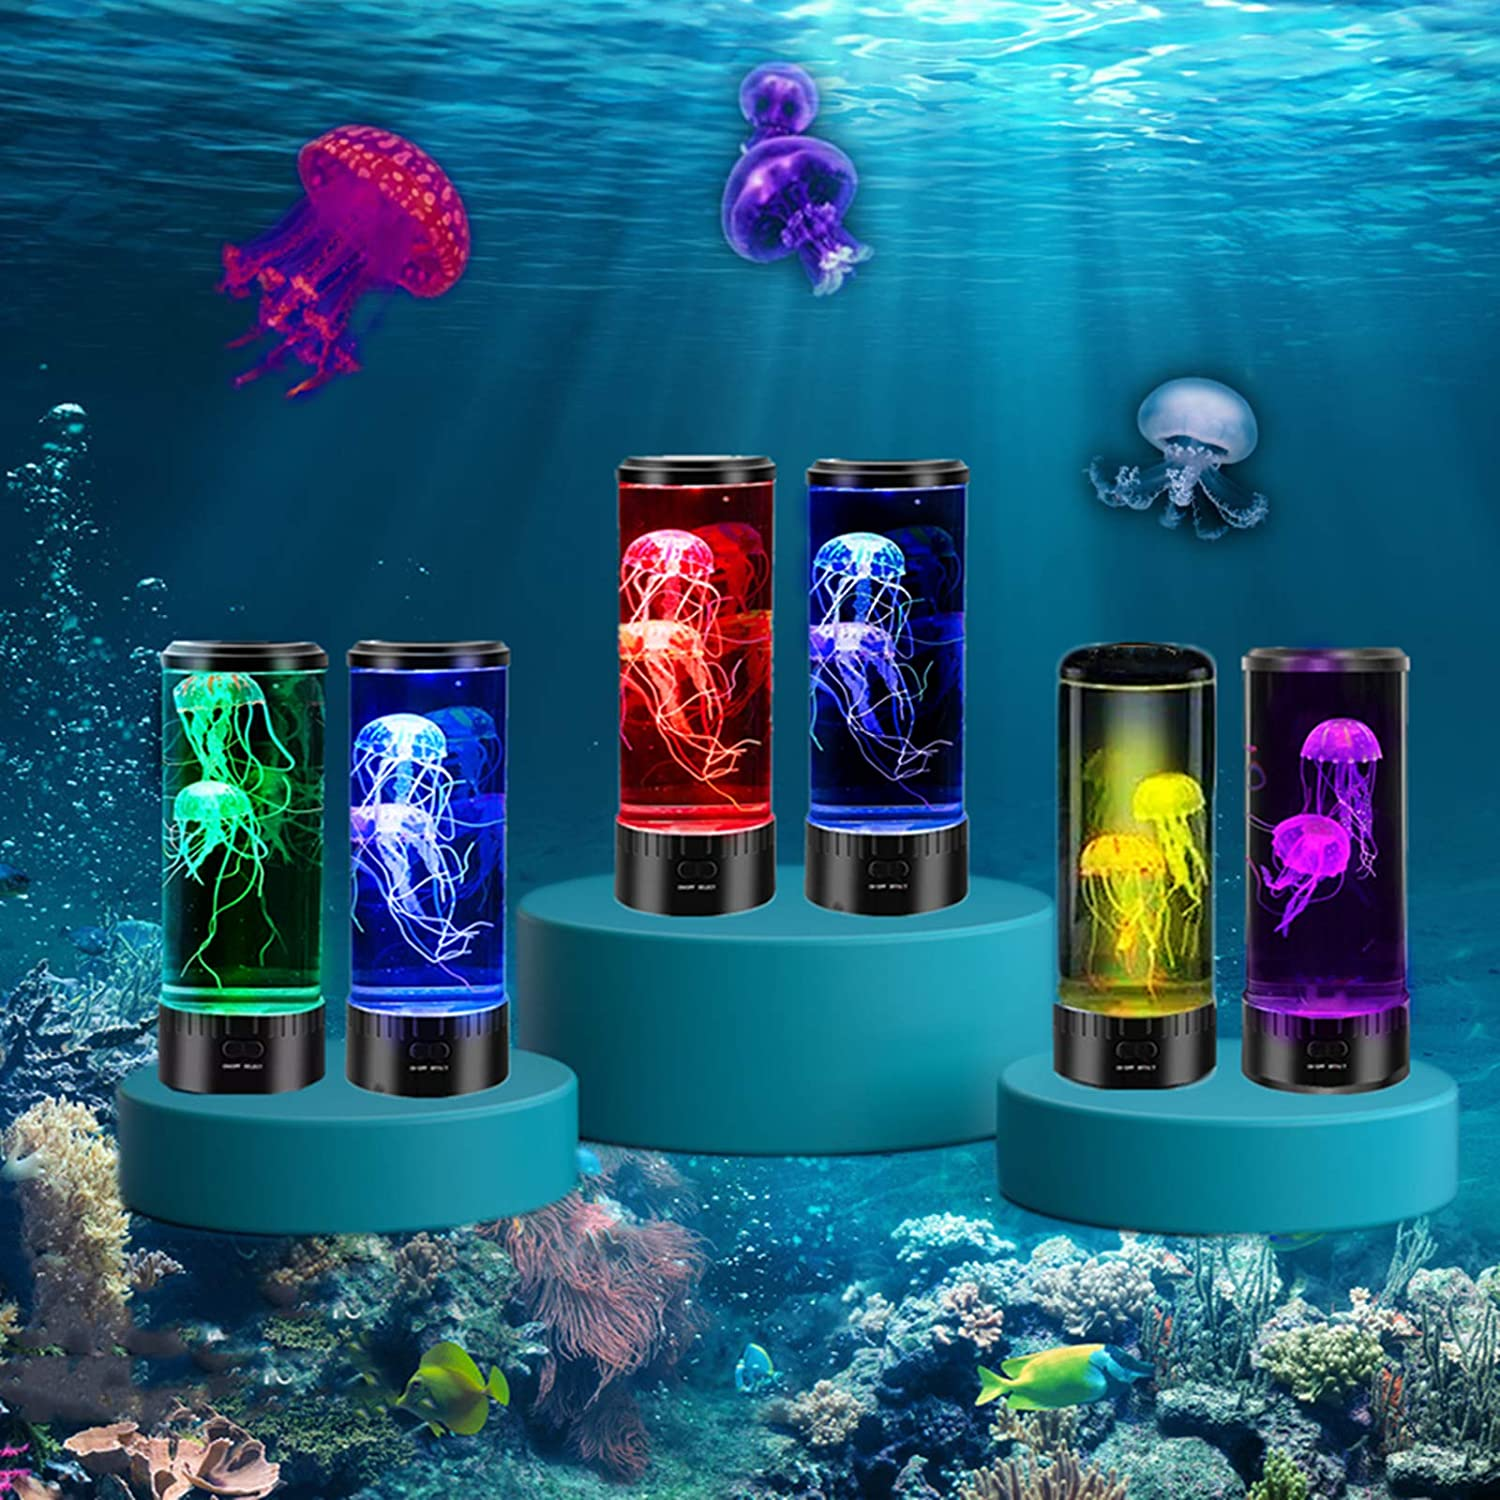 LUOWAN Led Jellyfish Lamp, Jellyfish Aquarium with Color Changing Light Effects, USB Powered, Round Jelly Fish Aquariums Tank Night Mood Lamp Ideal Gift